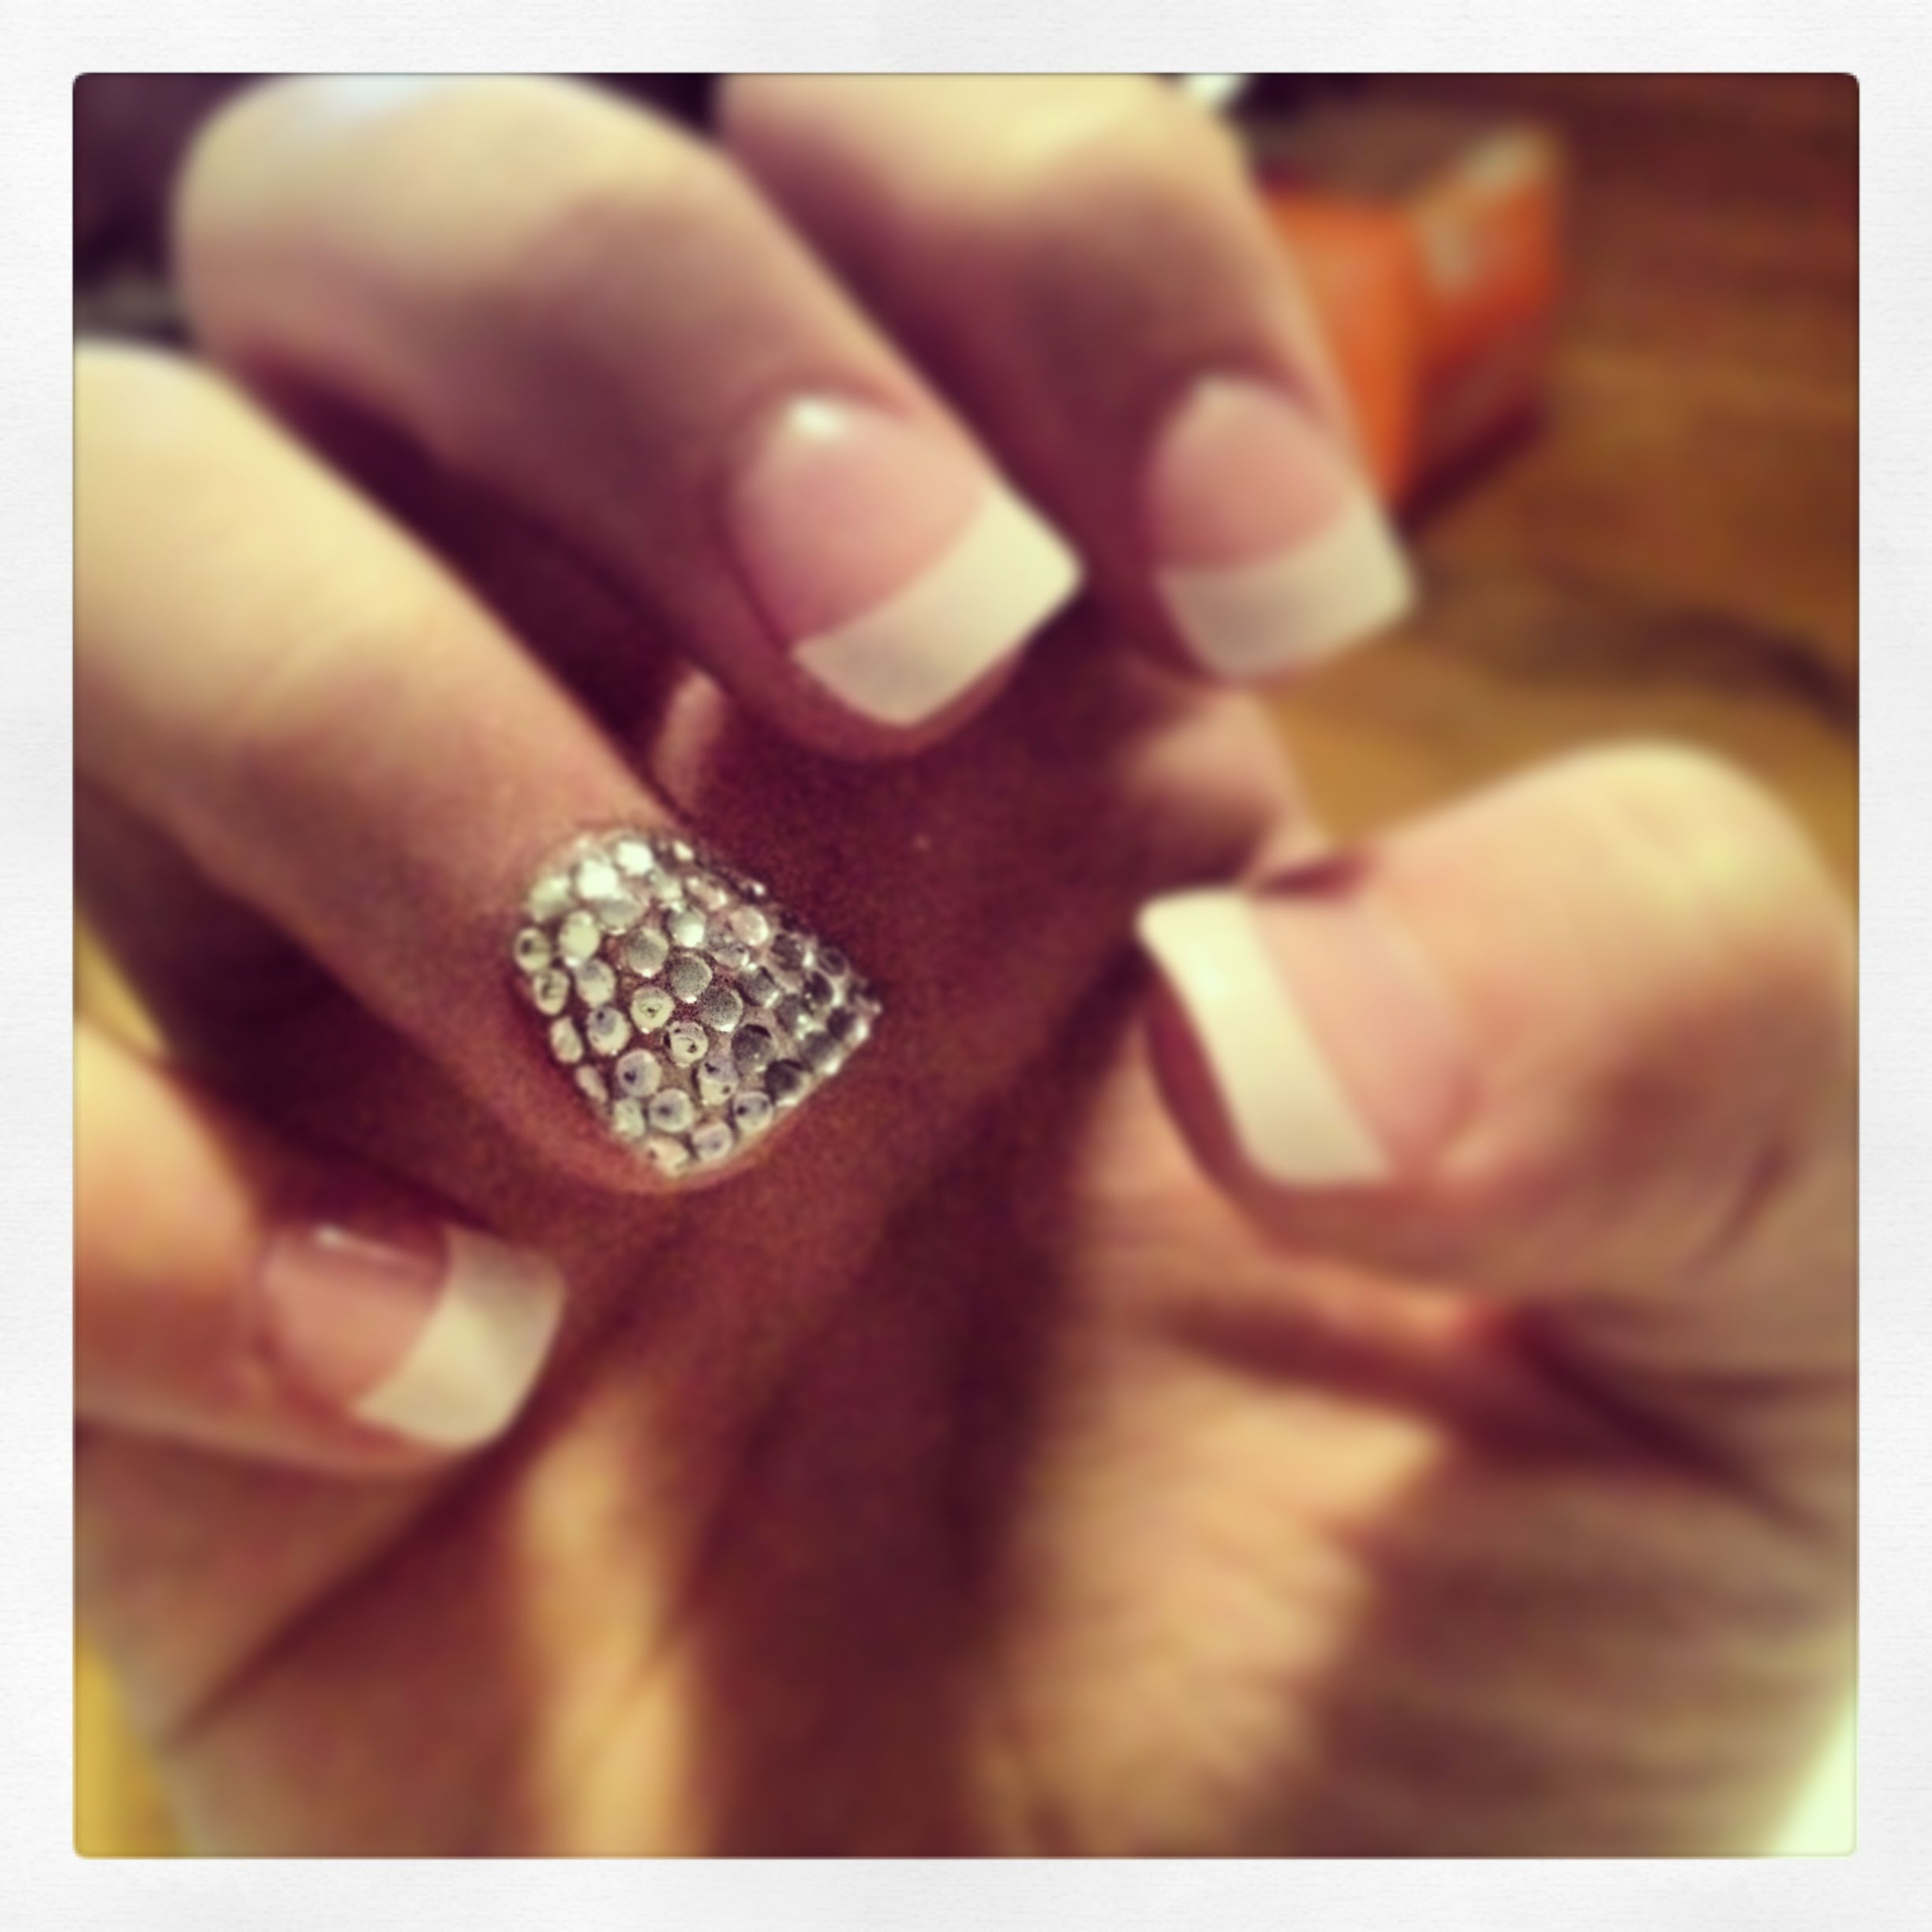 Diamond nails | Beauty | Pinterest